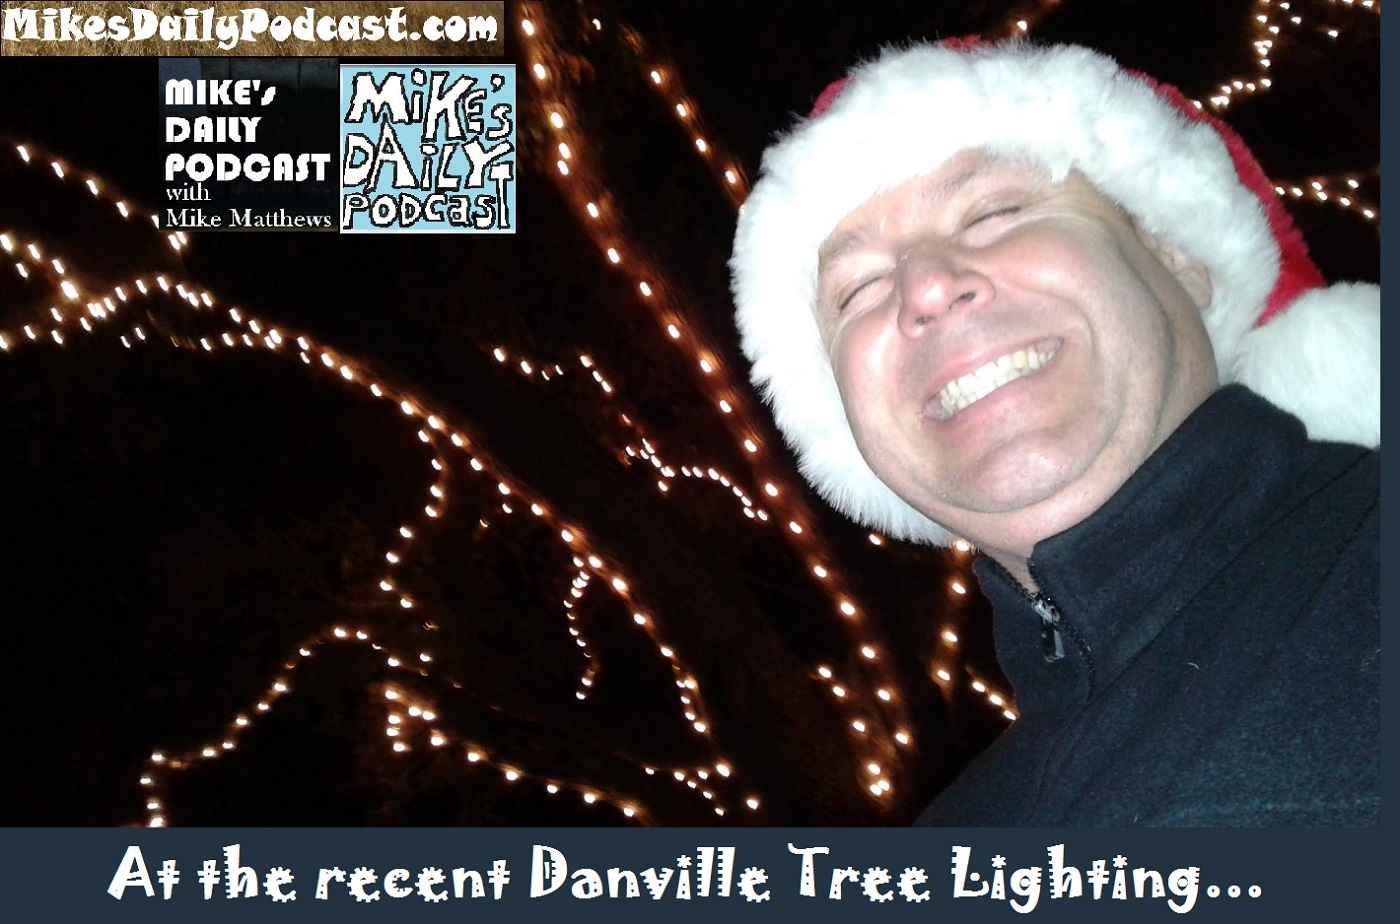 mikes-daily-podcast-1229-danville-tree-lighting-ceremony